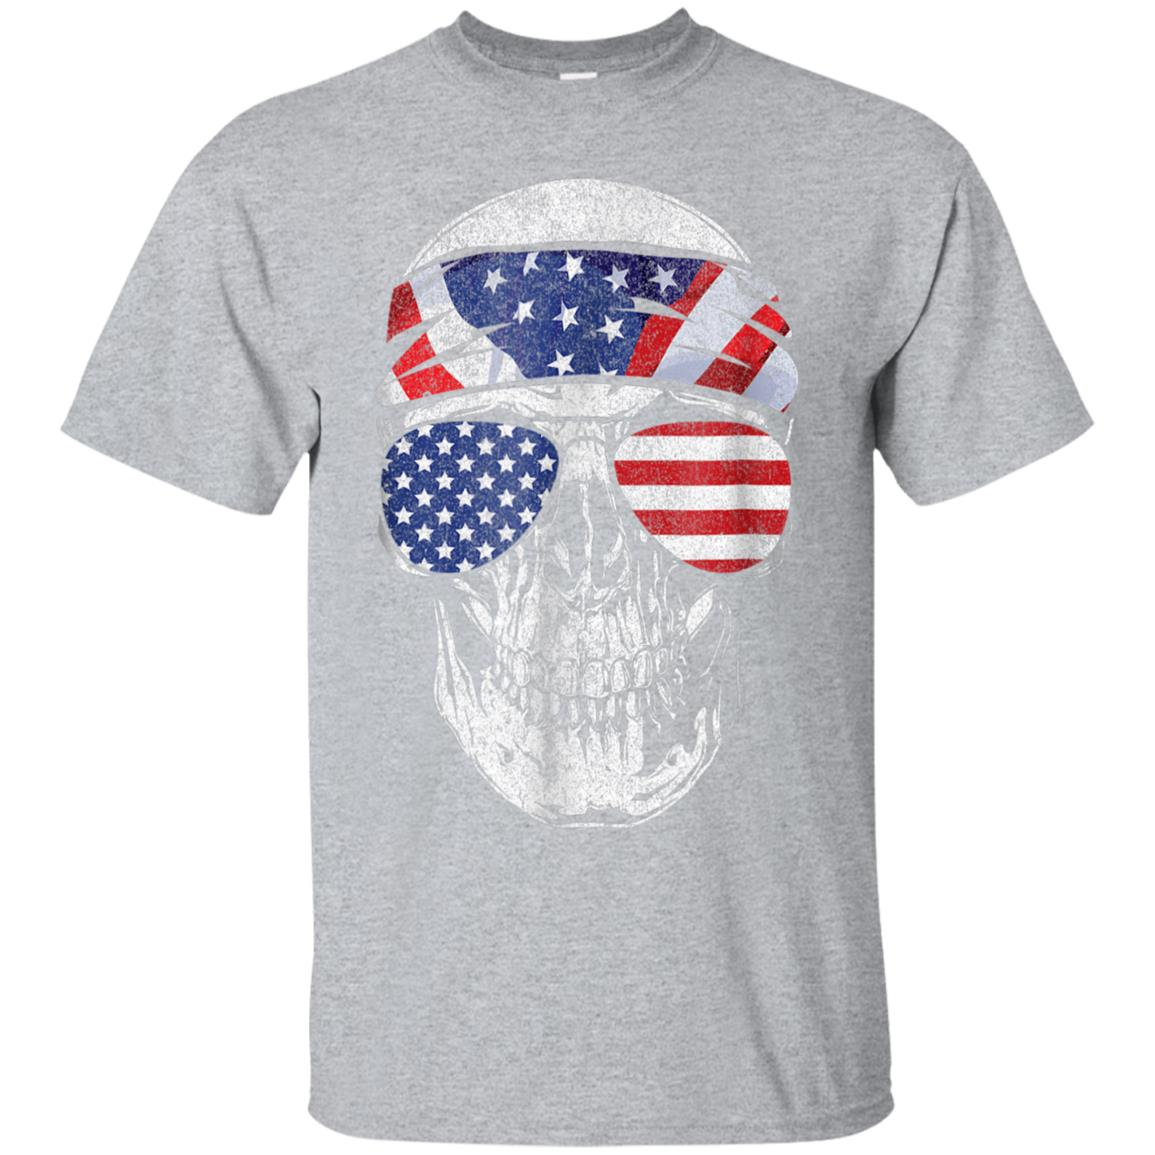 July 4th American Flag Skull T Shirt Patriotic Gift Tee 99promocode